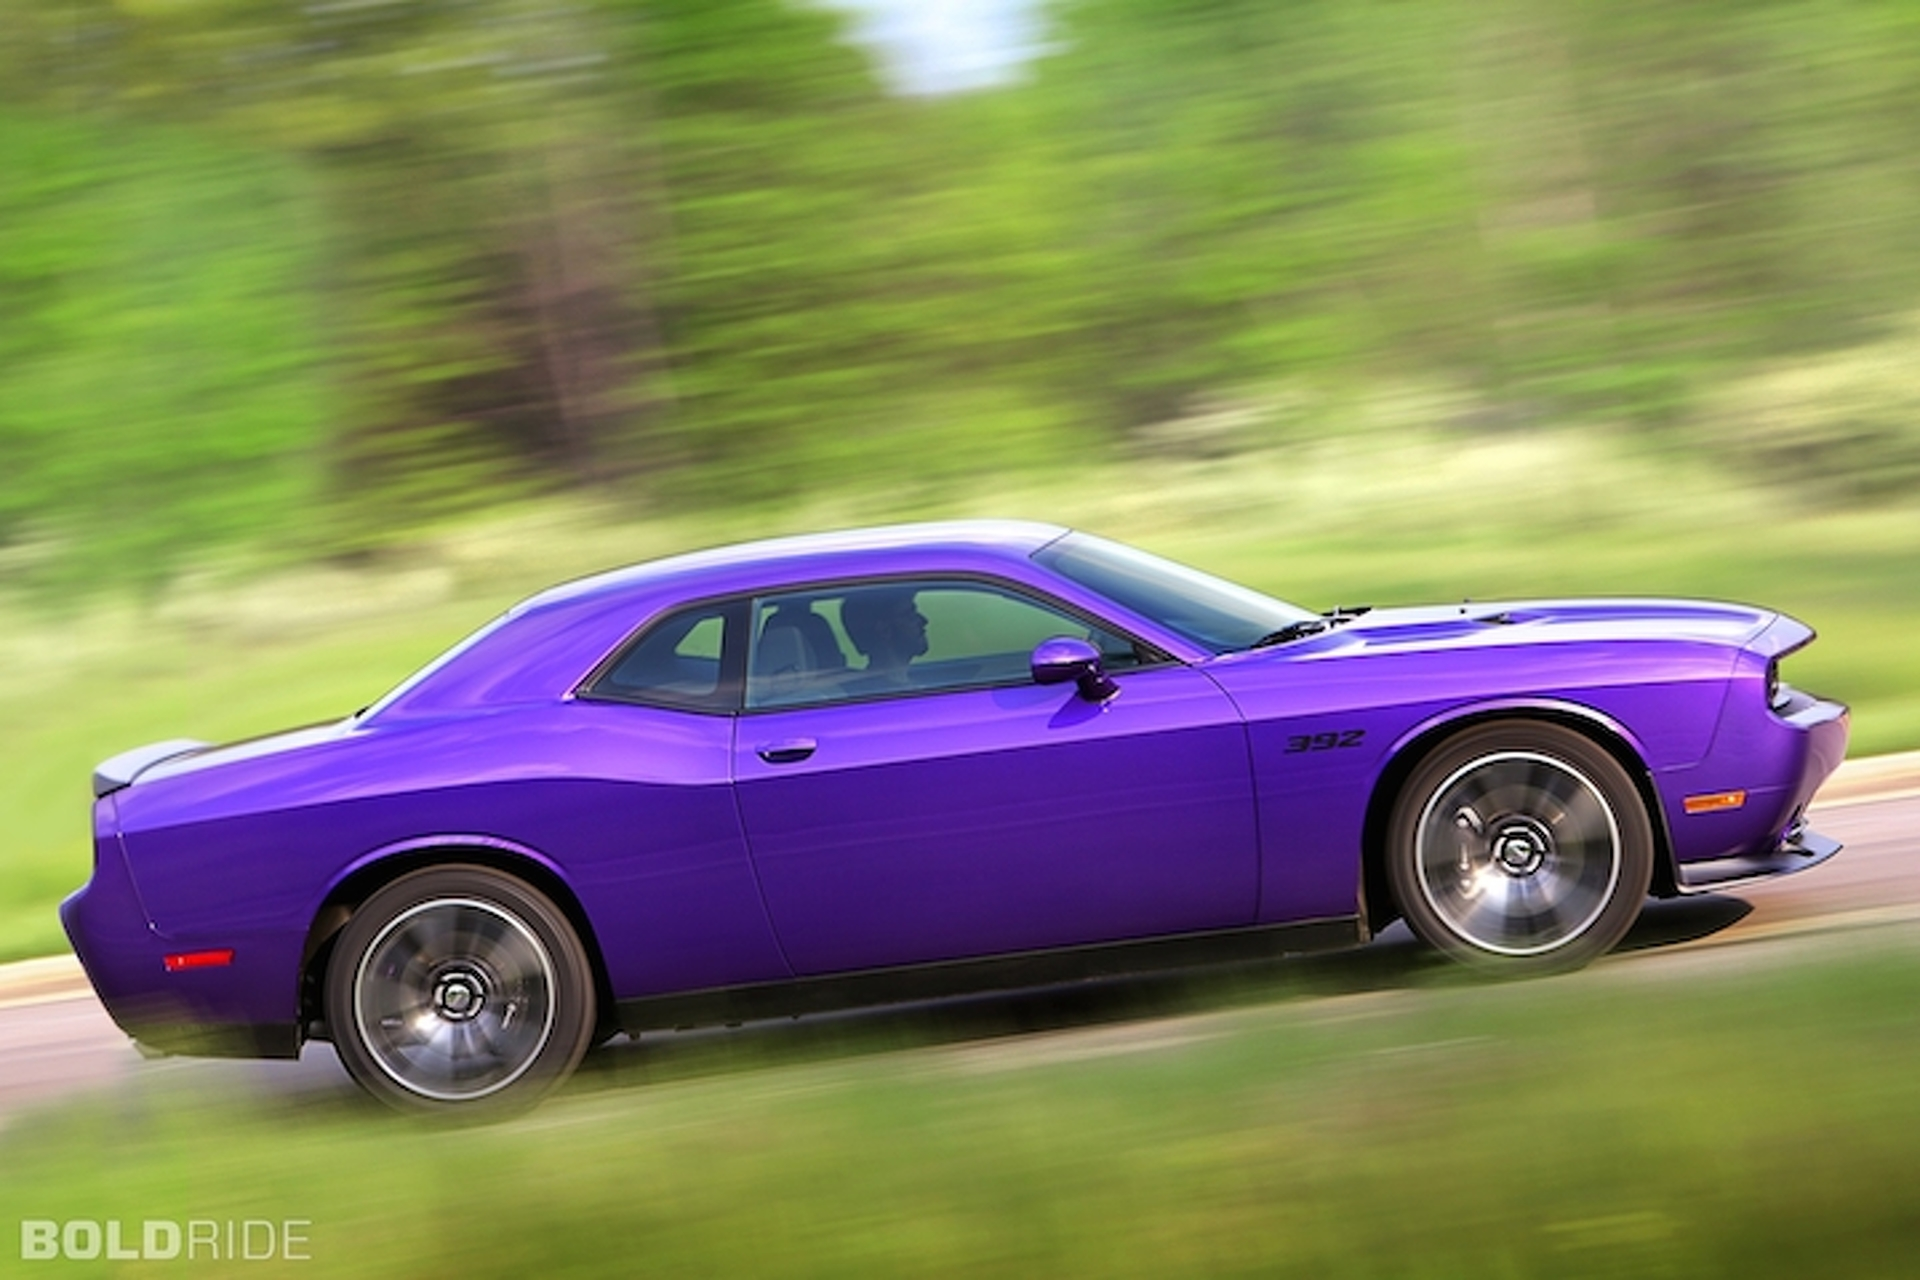 Dodge Challenger Hellcat V8 Could Be More Powerful than V10 Viper